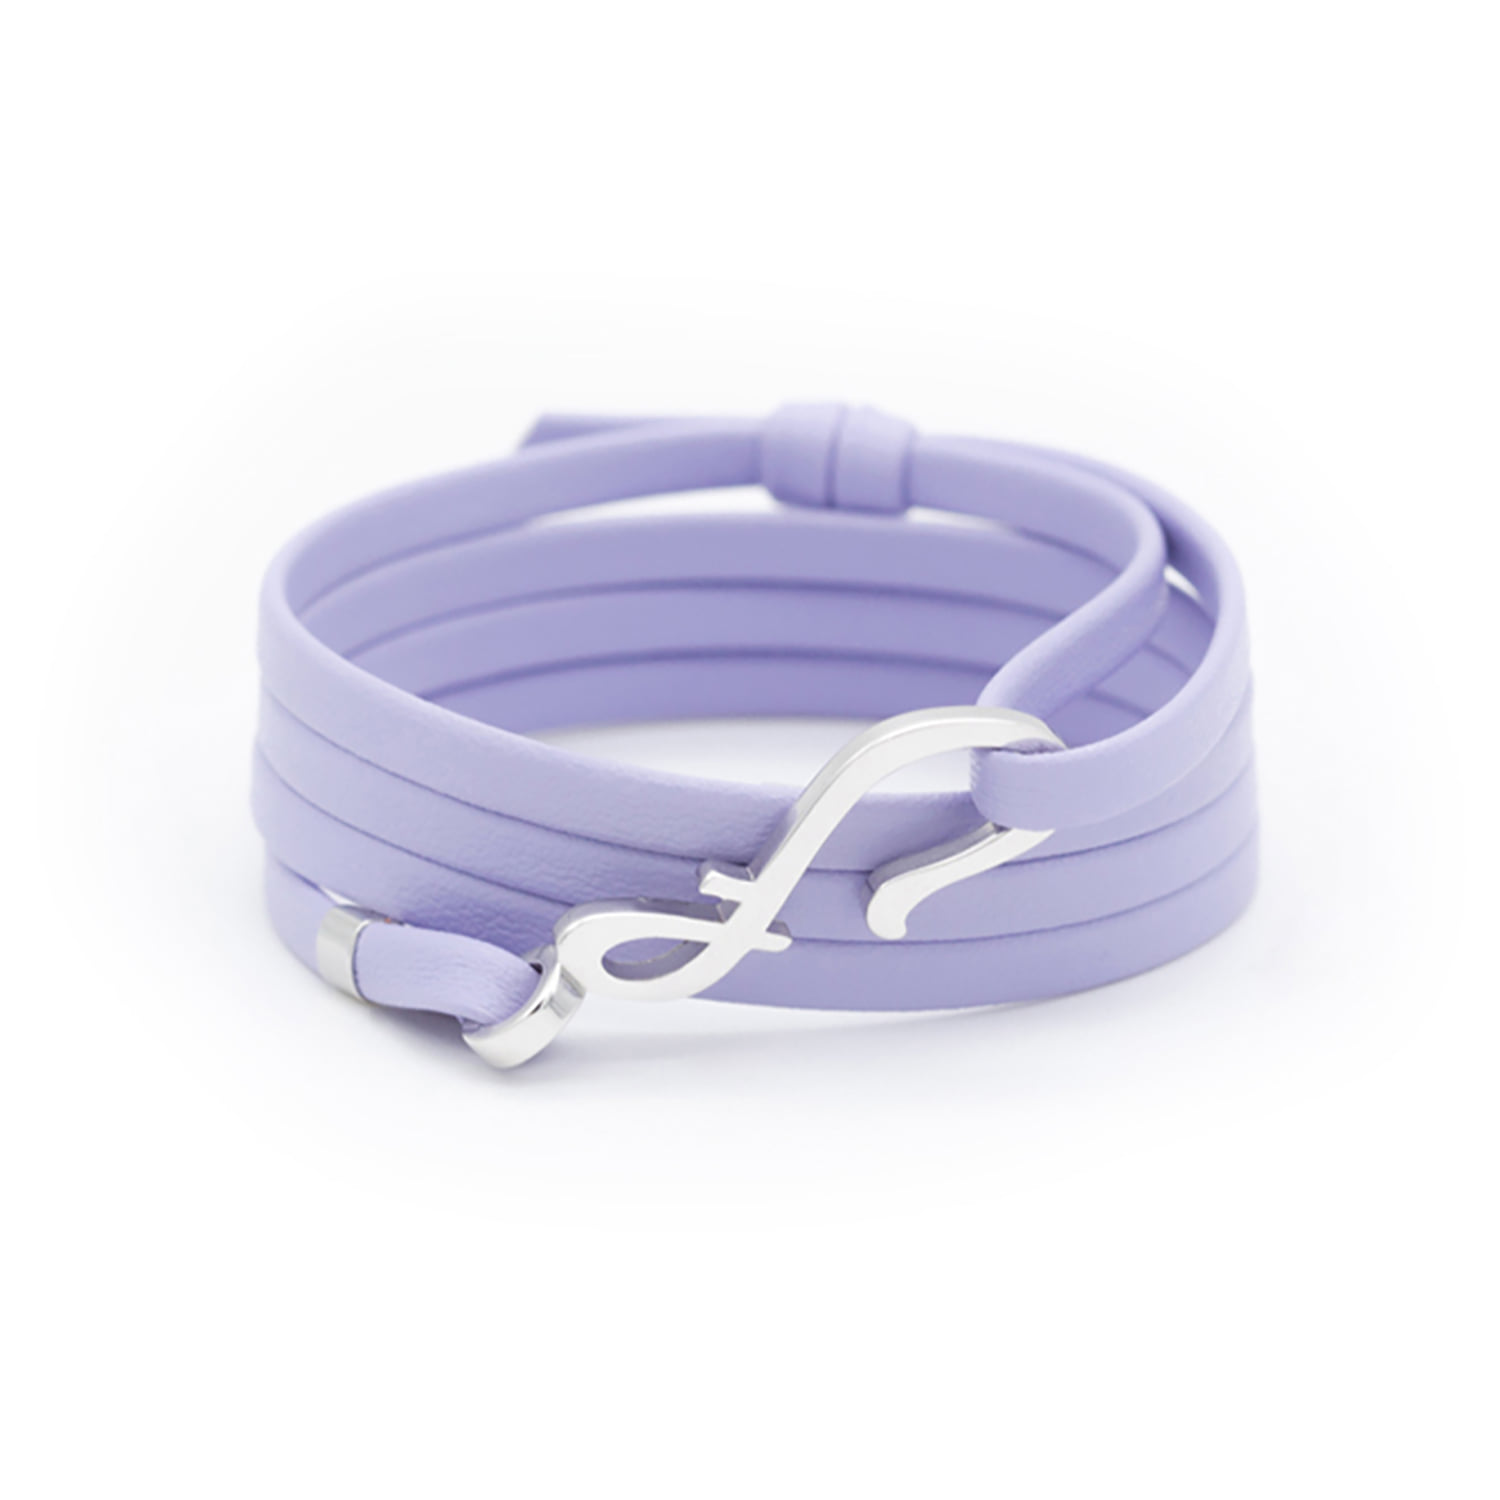 Hook leather - light purple